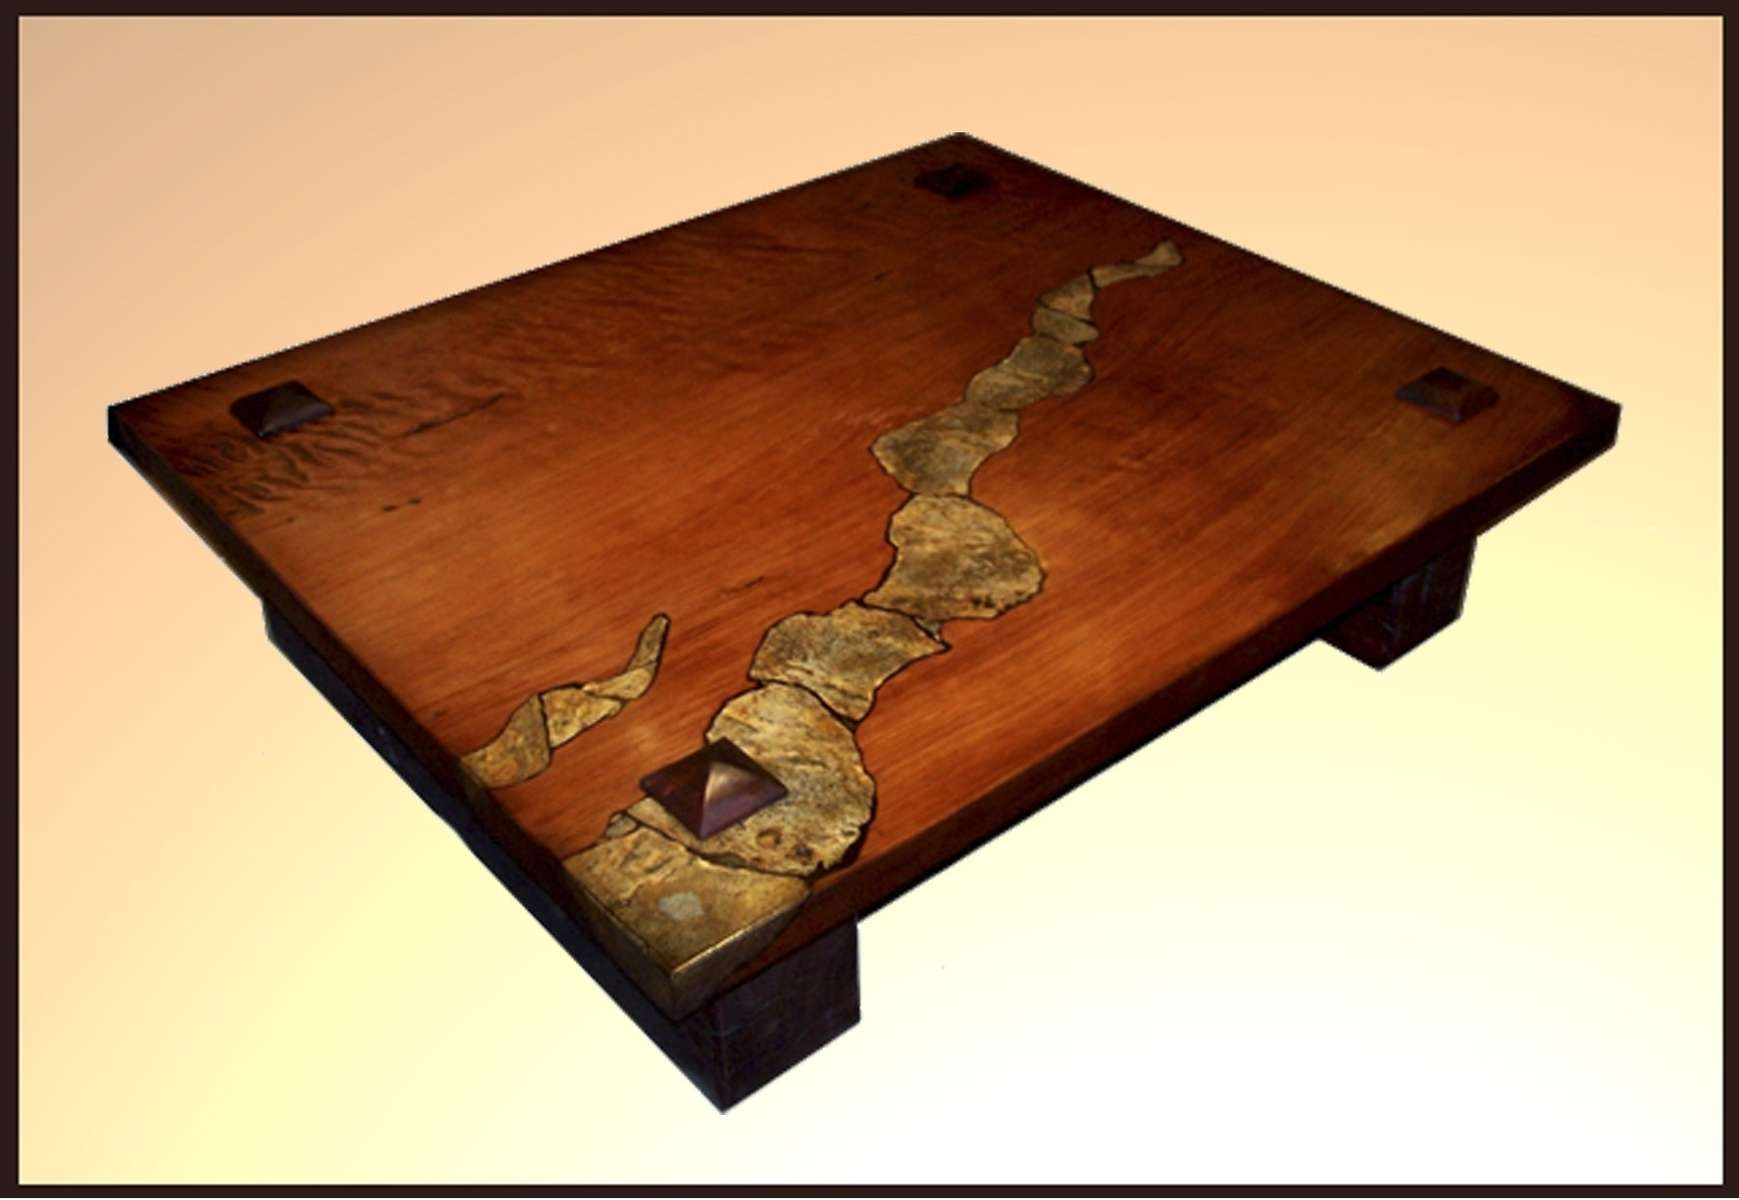 Trendy Square Stone Coffee Tables Regarding Fashionable Very Low Square Wooden Base With Stone Coffee Table (View 19 of 20)